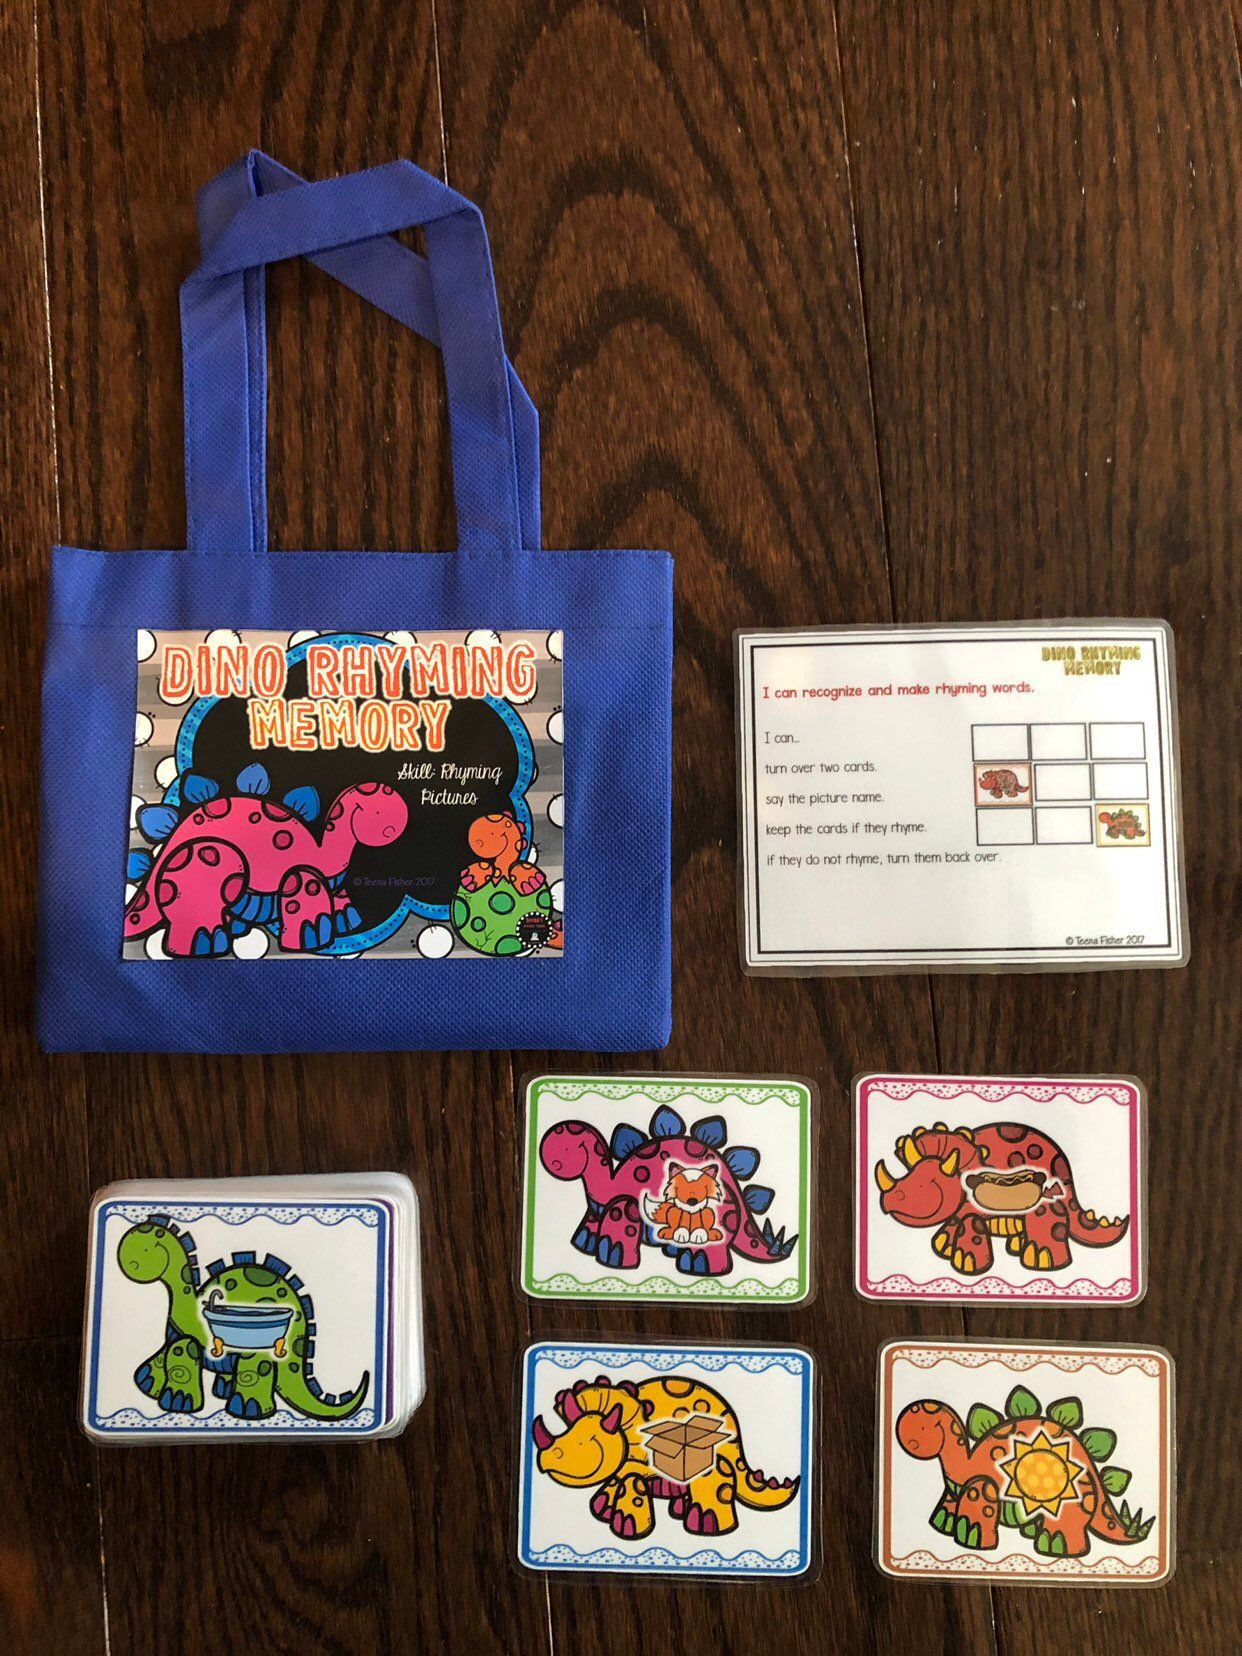 Rhyming Pictures Literacy Phonics Preschool Dinosaurs